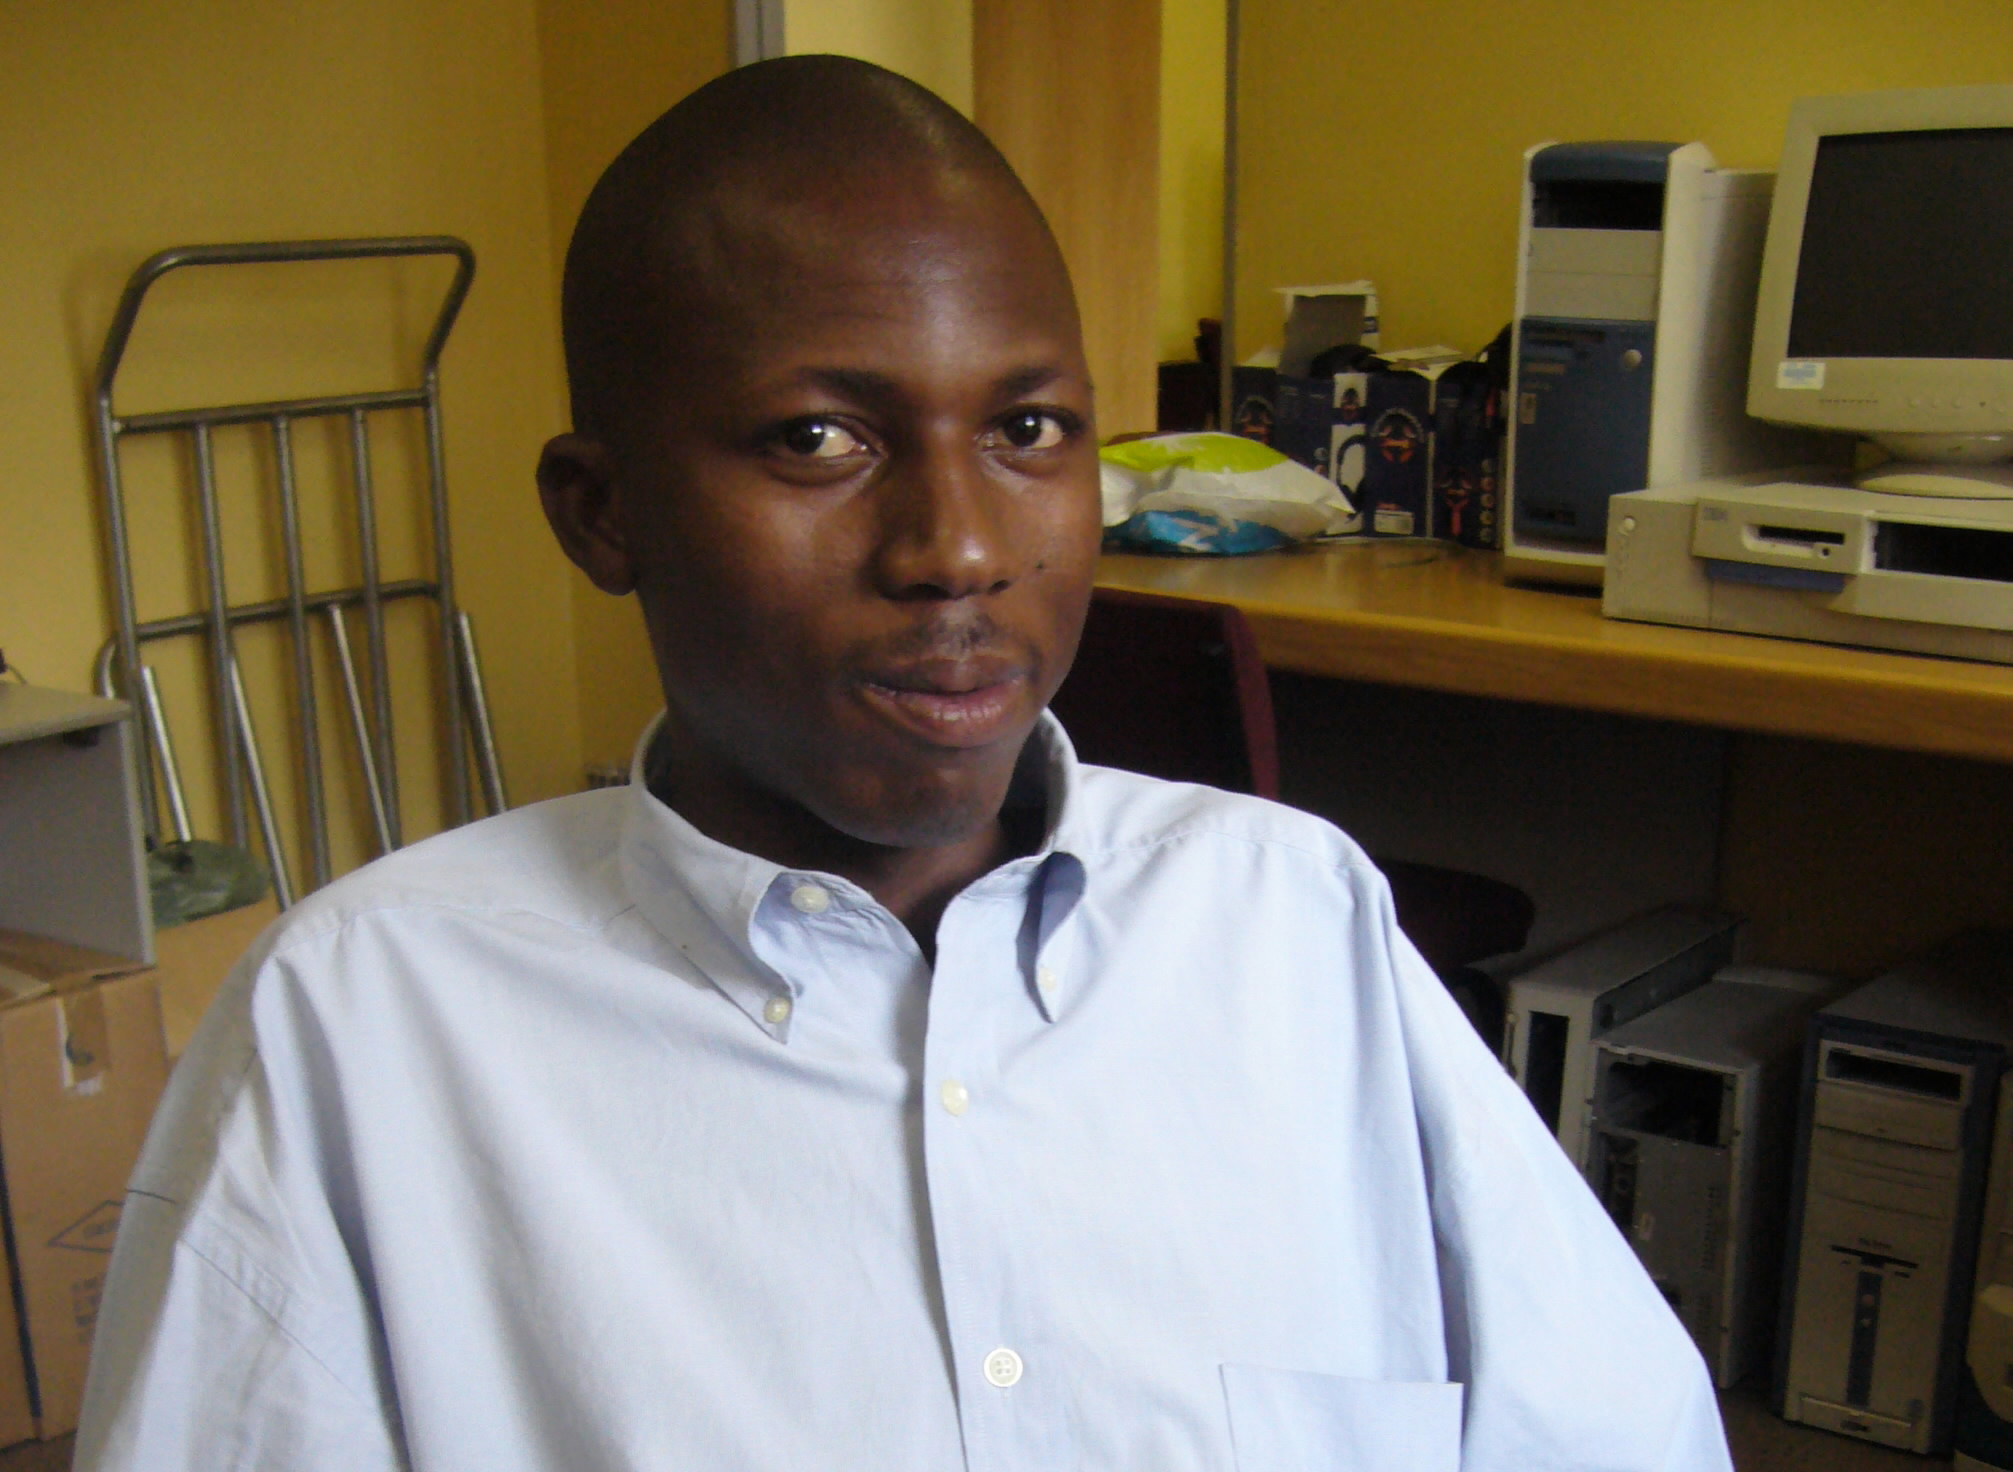 Terrance Mohlala has started a successful computer business with the help of The Business Place.